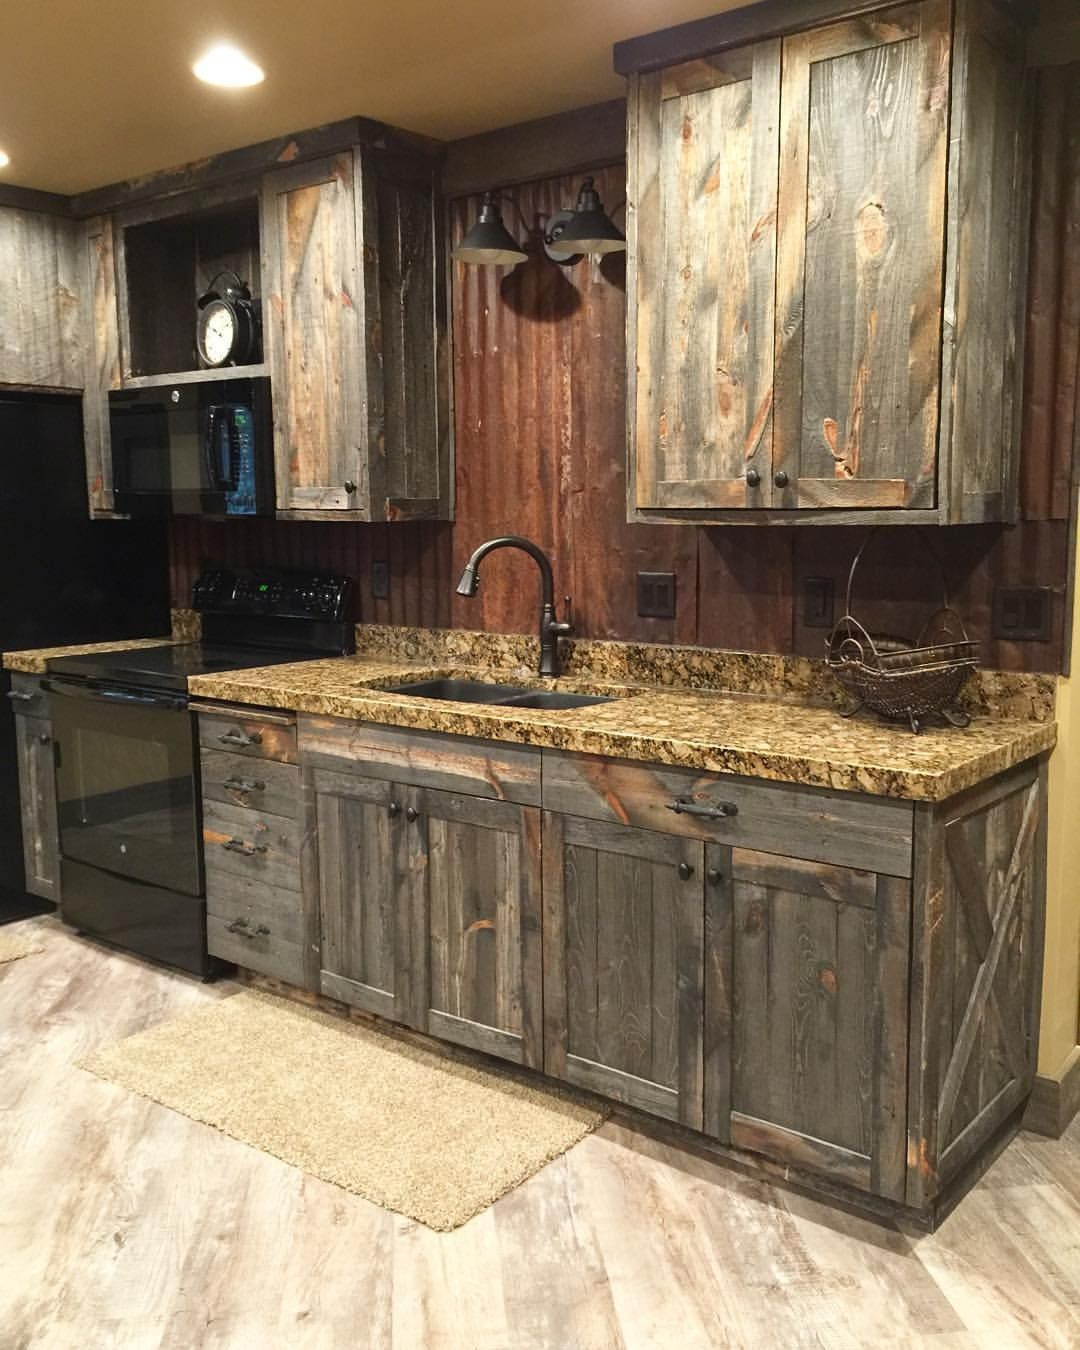 100 Ideas Make Your Kitchen Awesome With Pallet The Urban Interior Rustic Kitchen Pallet Kitchen Rustic Kitchen Cabinets